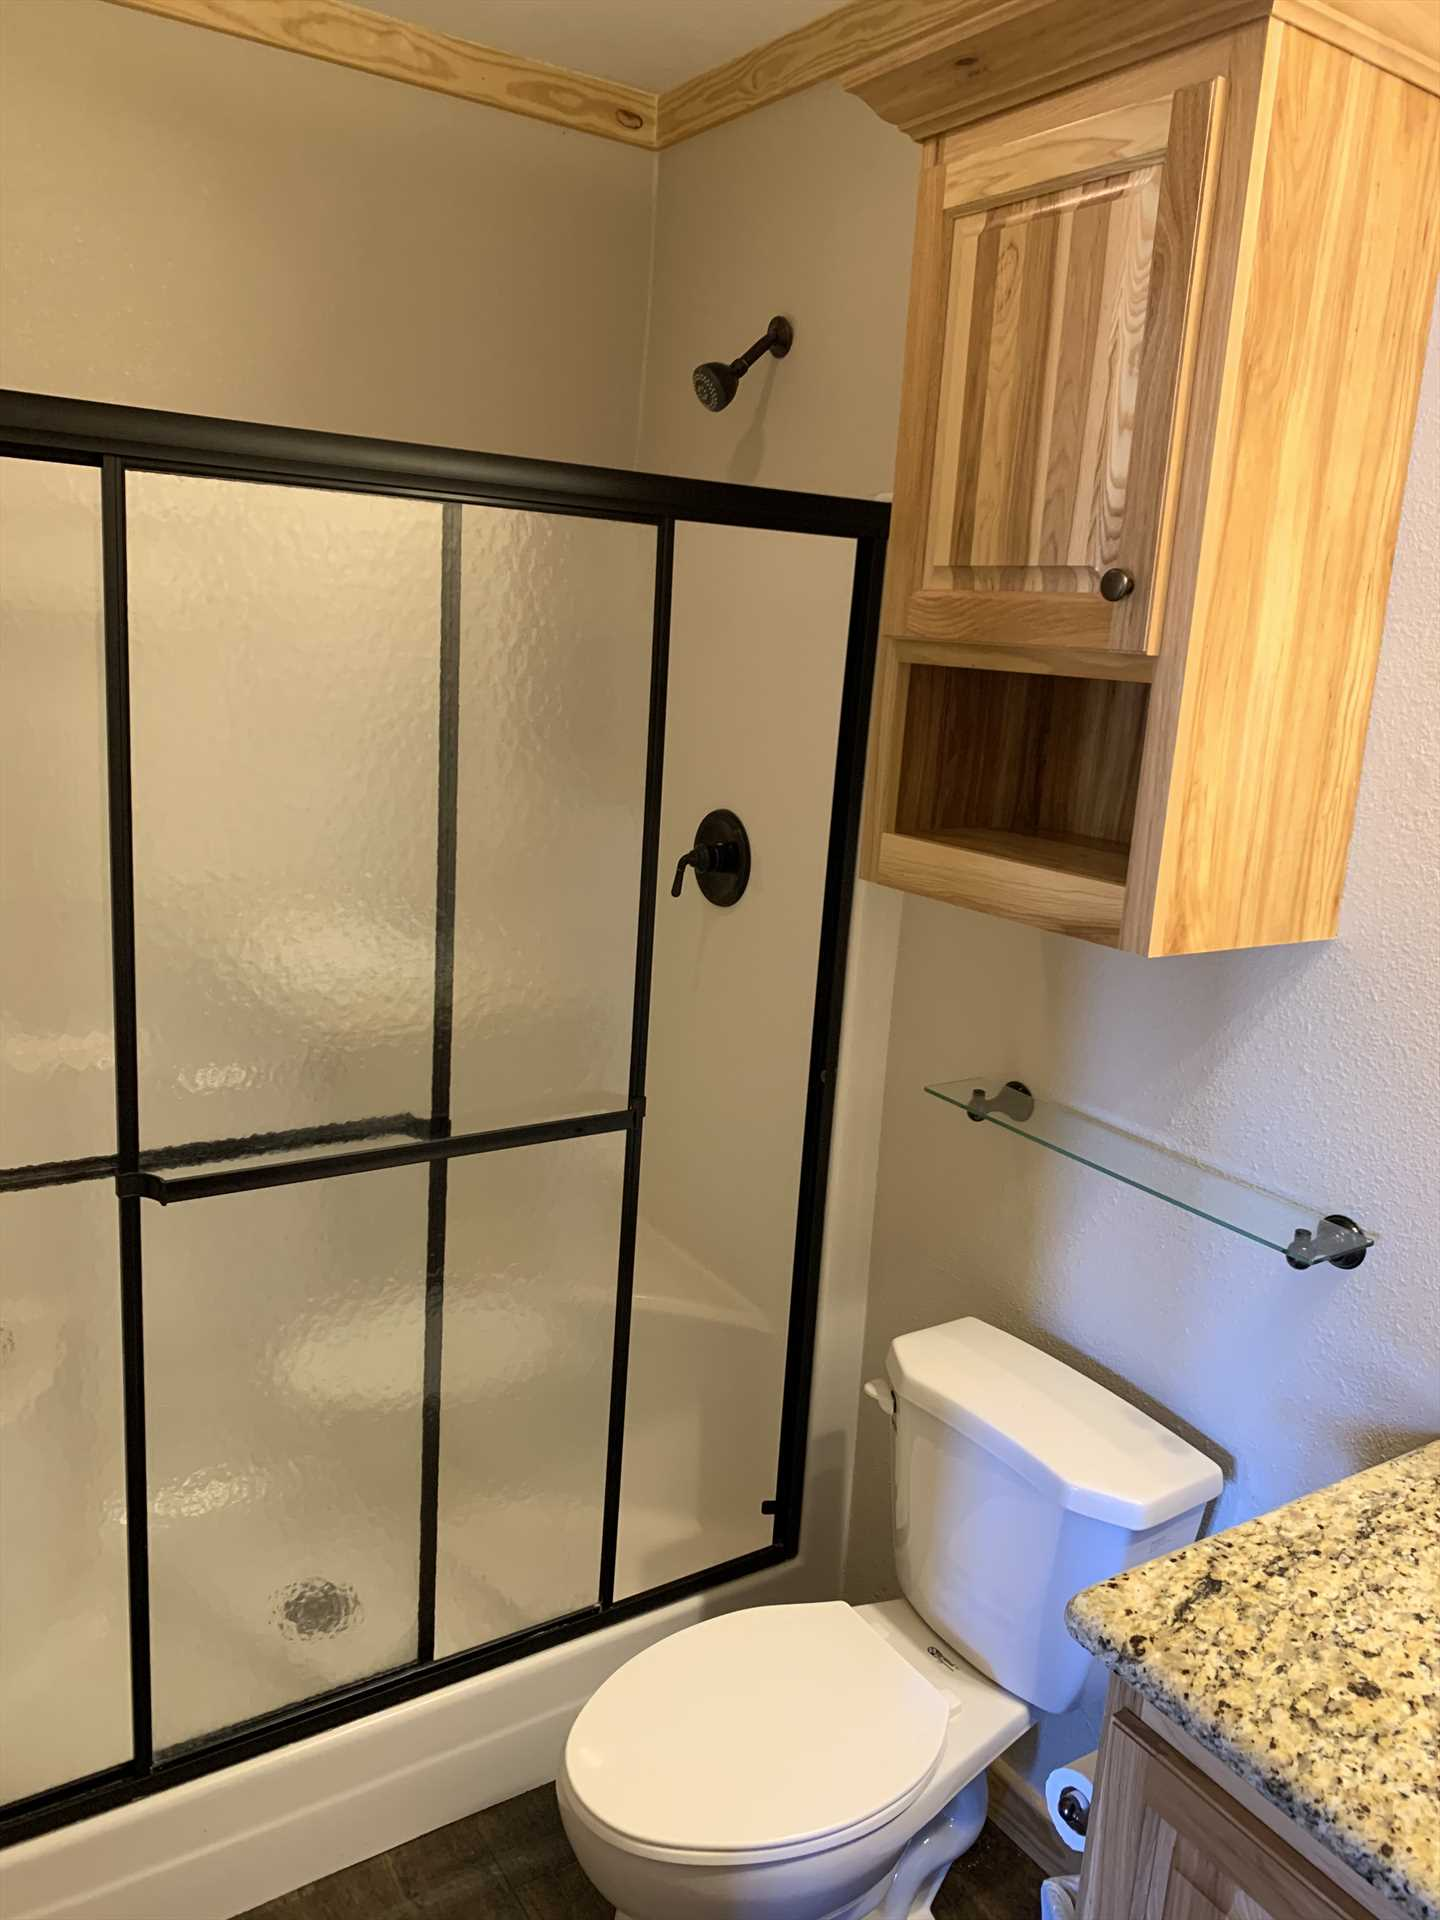 A stylish and functional shower stall in the second bathroom makes cleanup a relaxing pleasure!